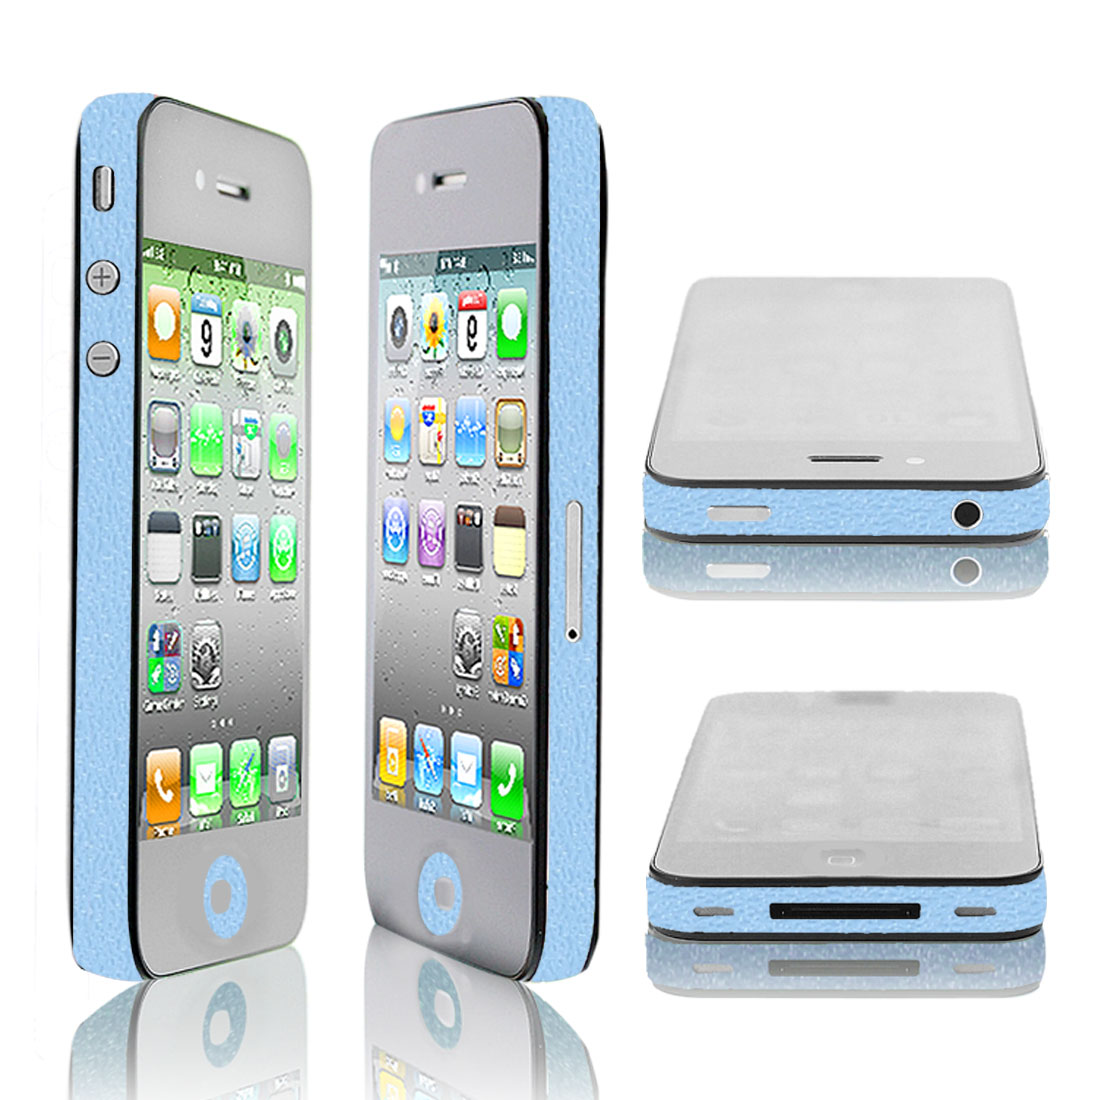 DIY Blue Vinyl Button Side Edge Wrap Decal Film Sticker for iPhone 4 4G 4S 4GS